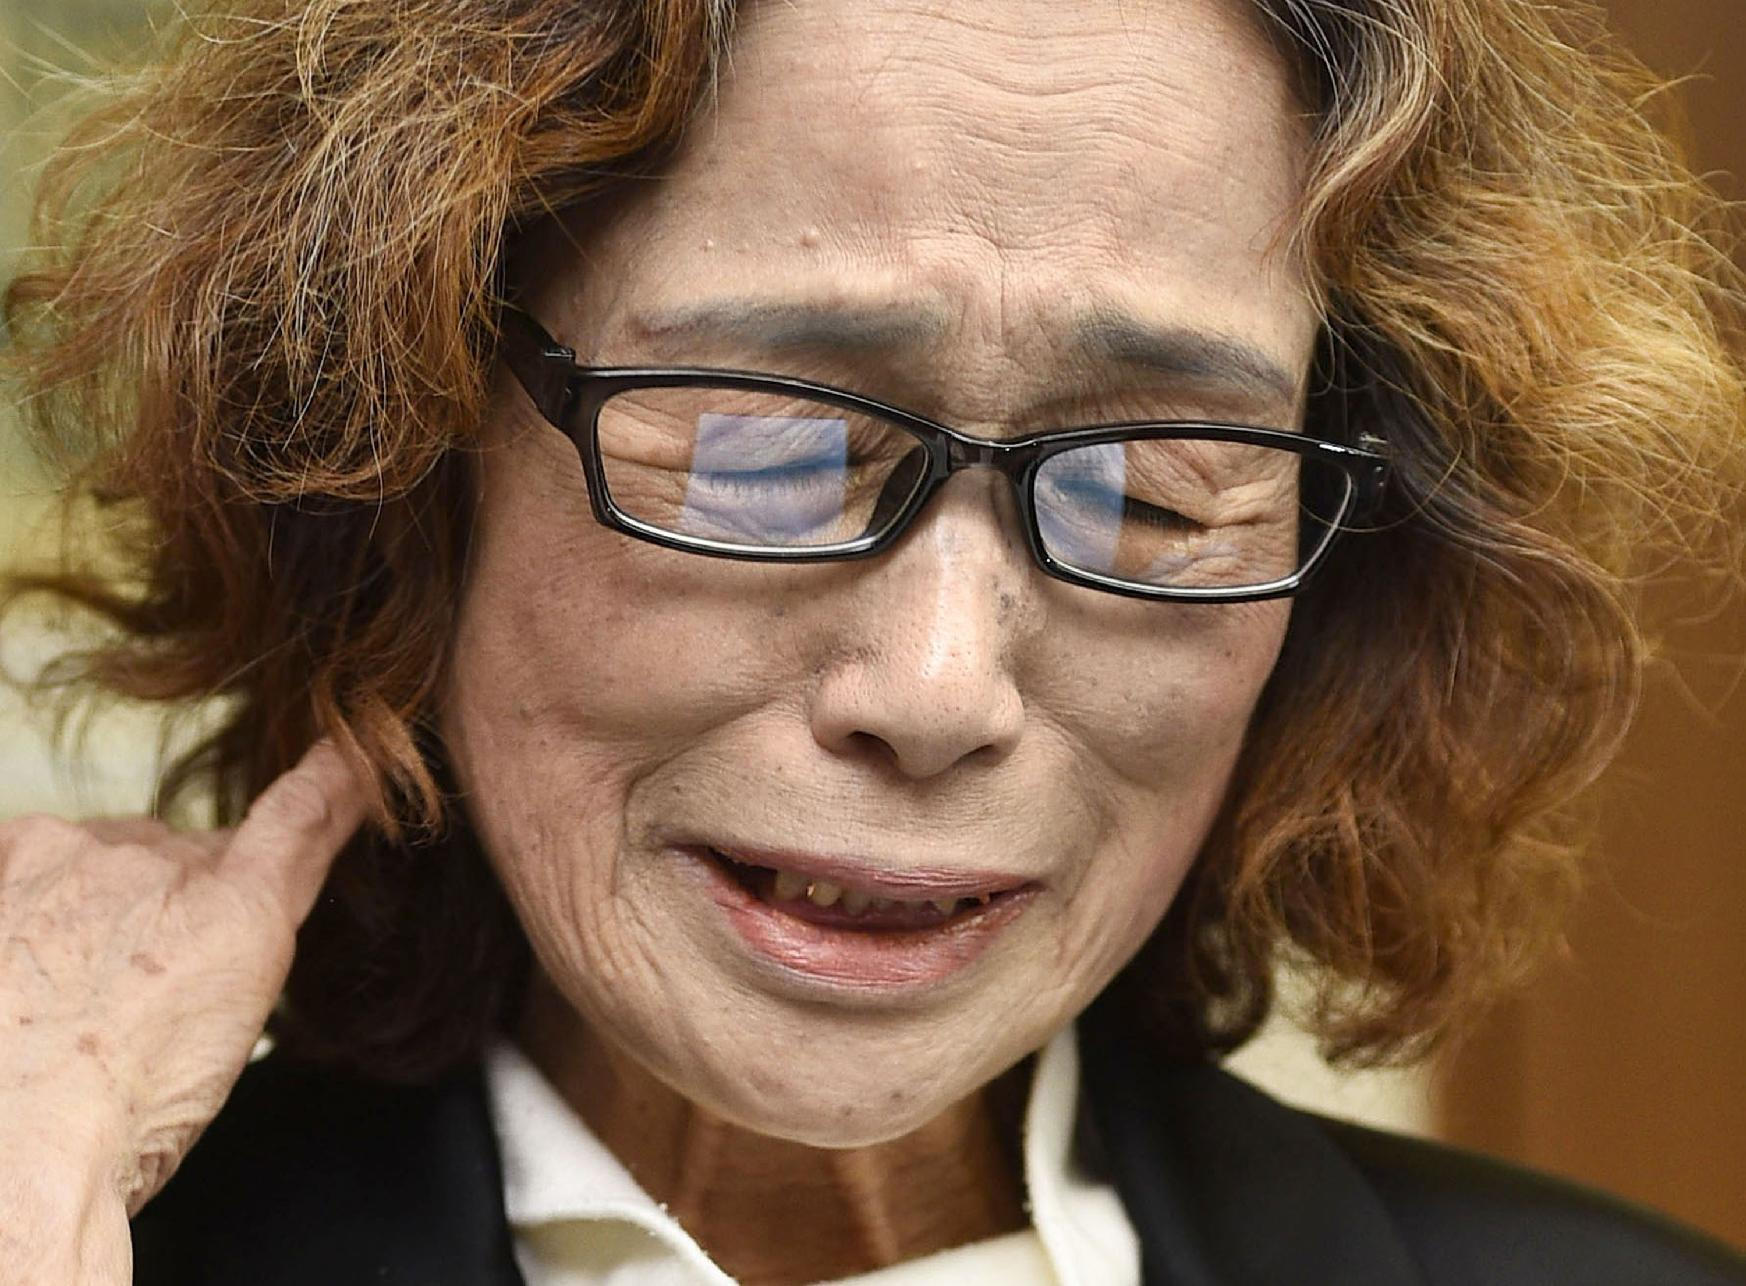 Japan mourns Kenji Goto as caring and courageous reporter